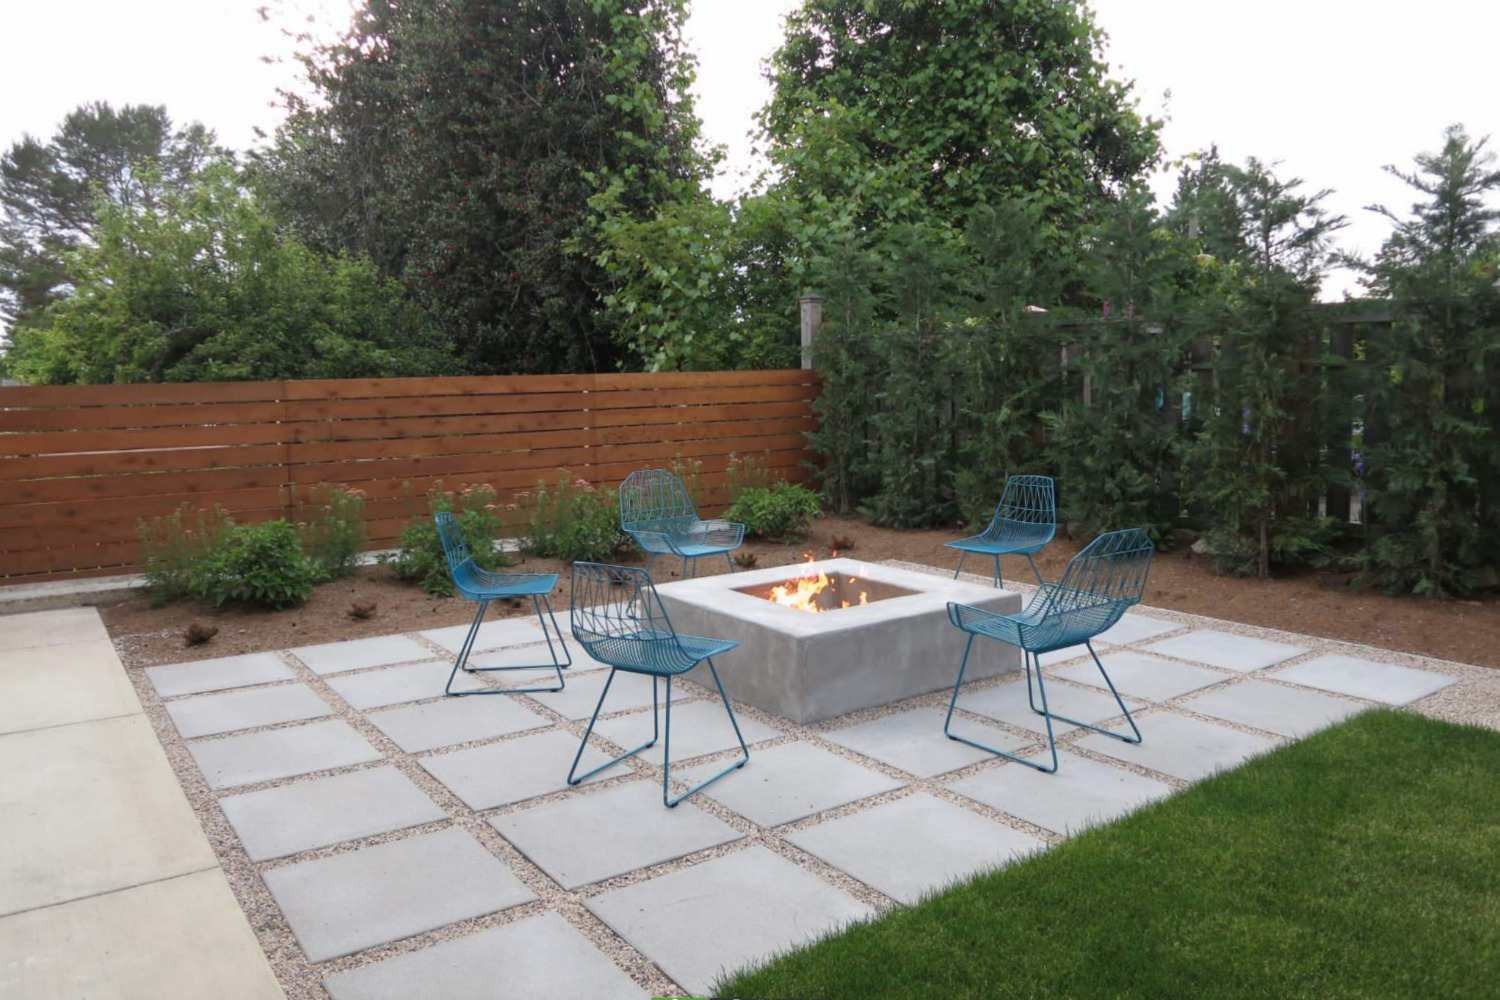 25 Great Patio Paver Design Ideas intended for Backyard Pavers Design Ideas